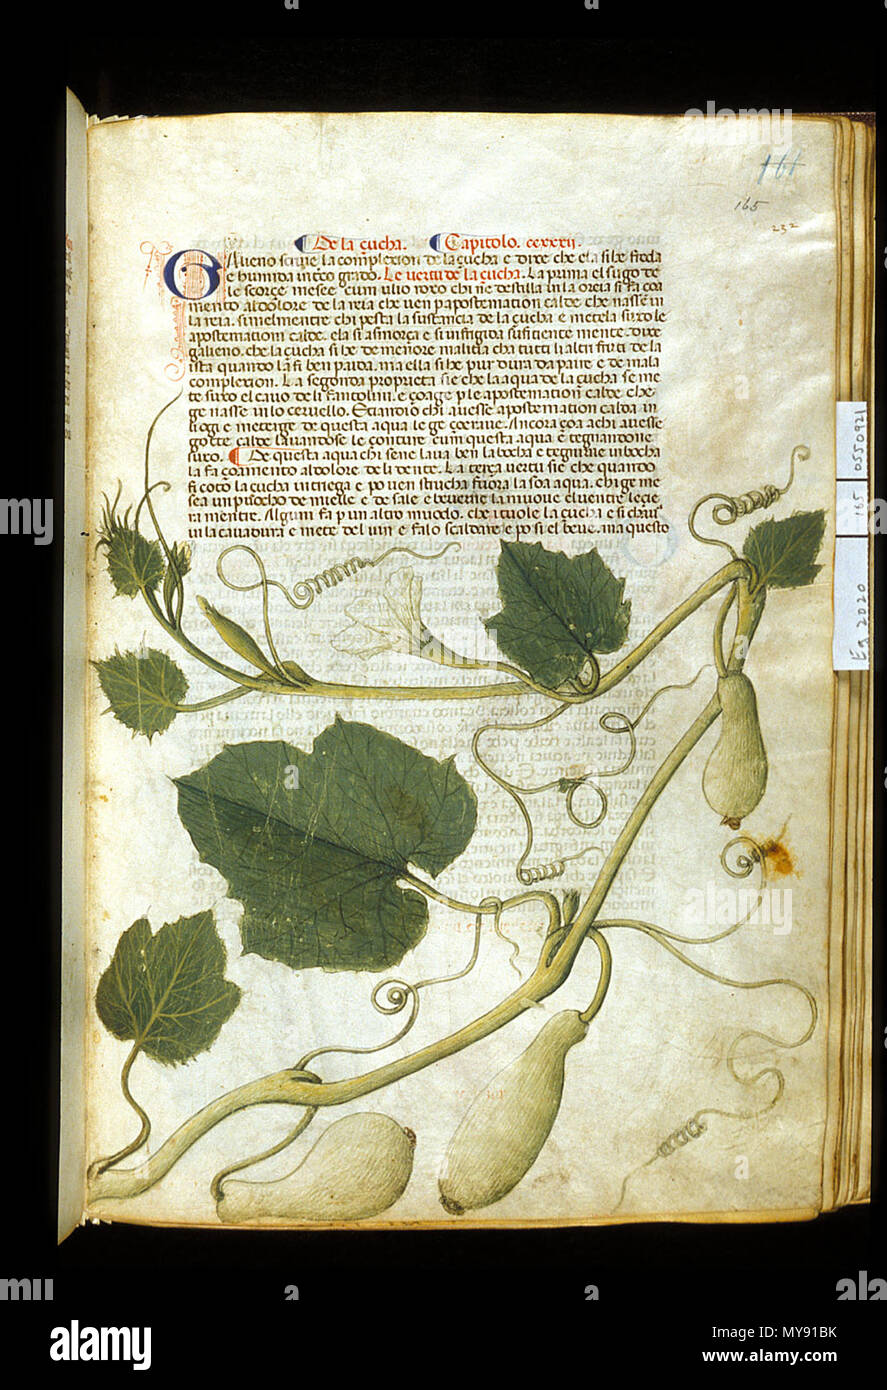 . English: arapion the Younger, Translation of the herbal (The 'Carrara Herbal'), including the Liber agrega, Herbolario volgare; De medicamentis, with index (ff. 263-265) Italy, N. (Padua); between c. 1390 and 1404 . between c. 1390 and 1404. An Italian translation, possibly from a Latin translation, of a treatise orginally written in Arabic by Serapion the Younger (Ibn Sarabi, likely 12th century). 99 Carrara Herbal01 - Stock Image